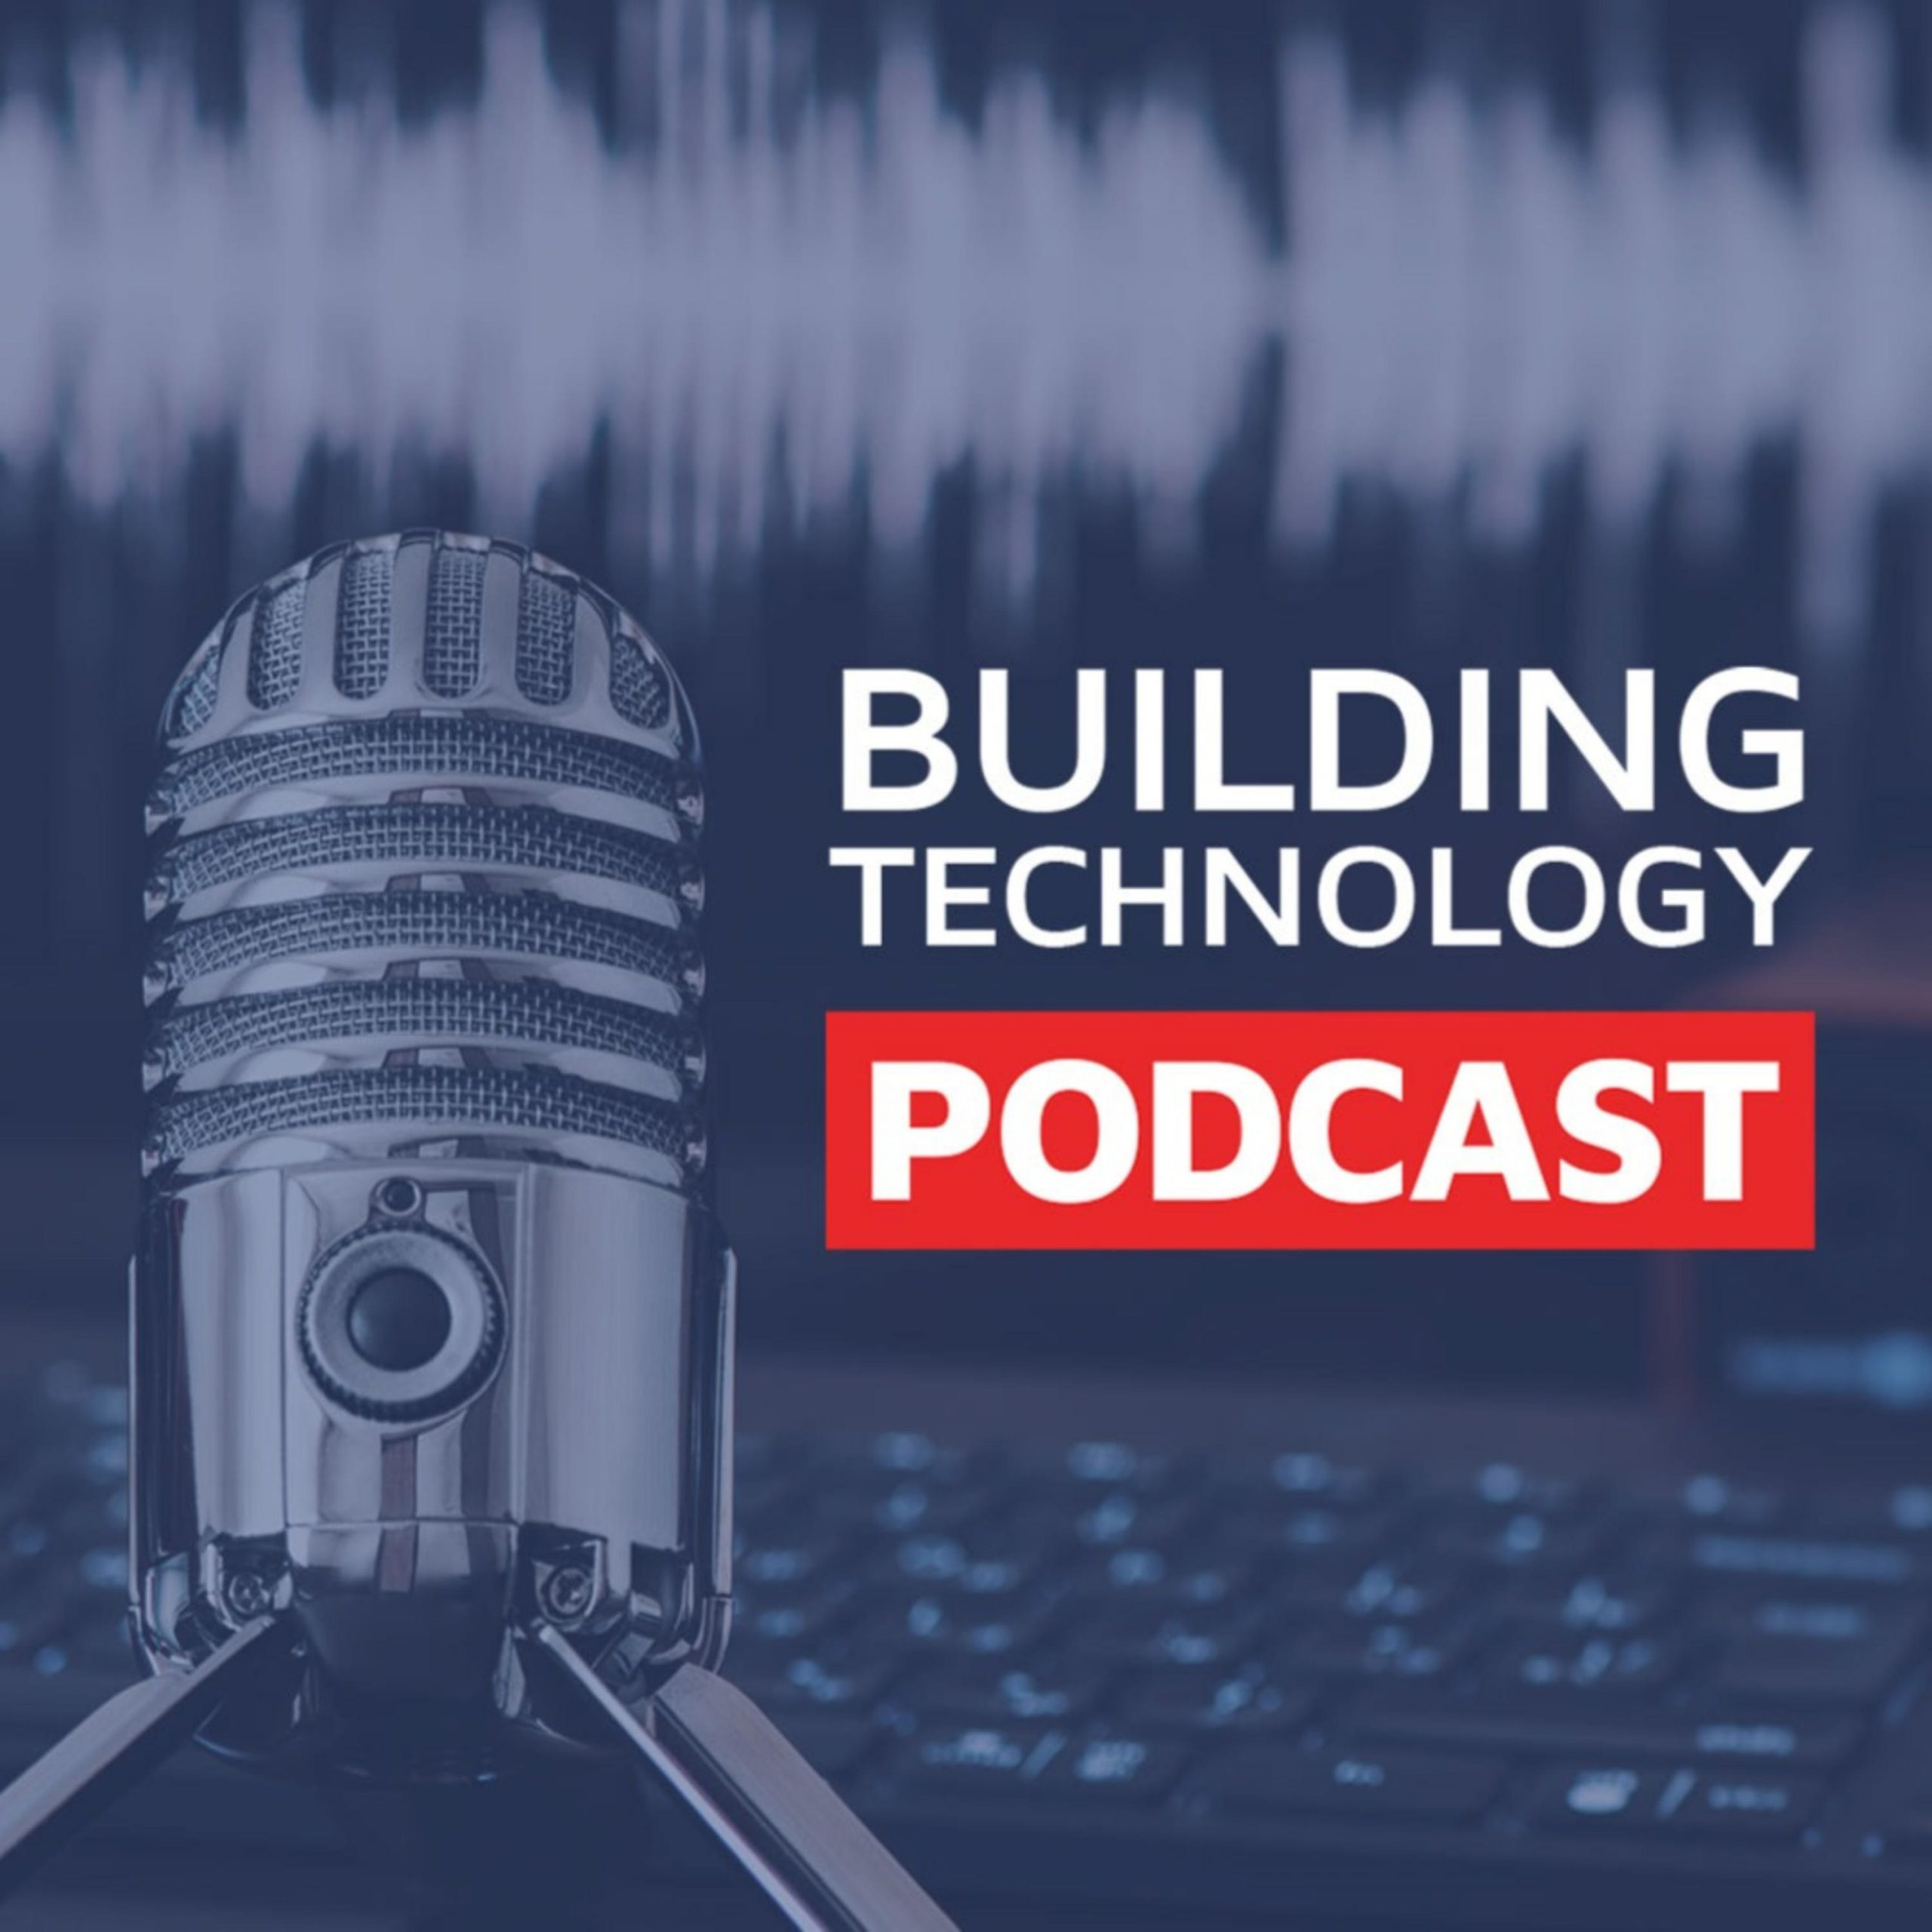 The Building Technology Podcast